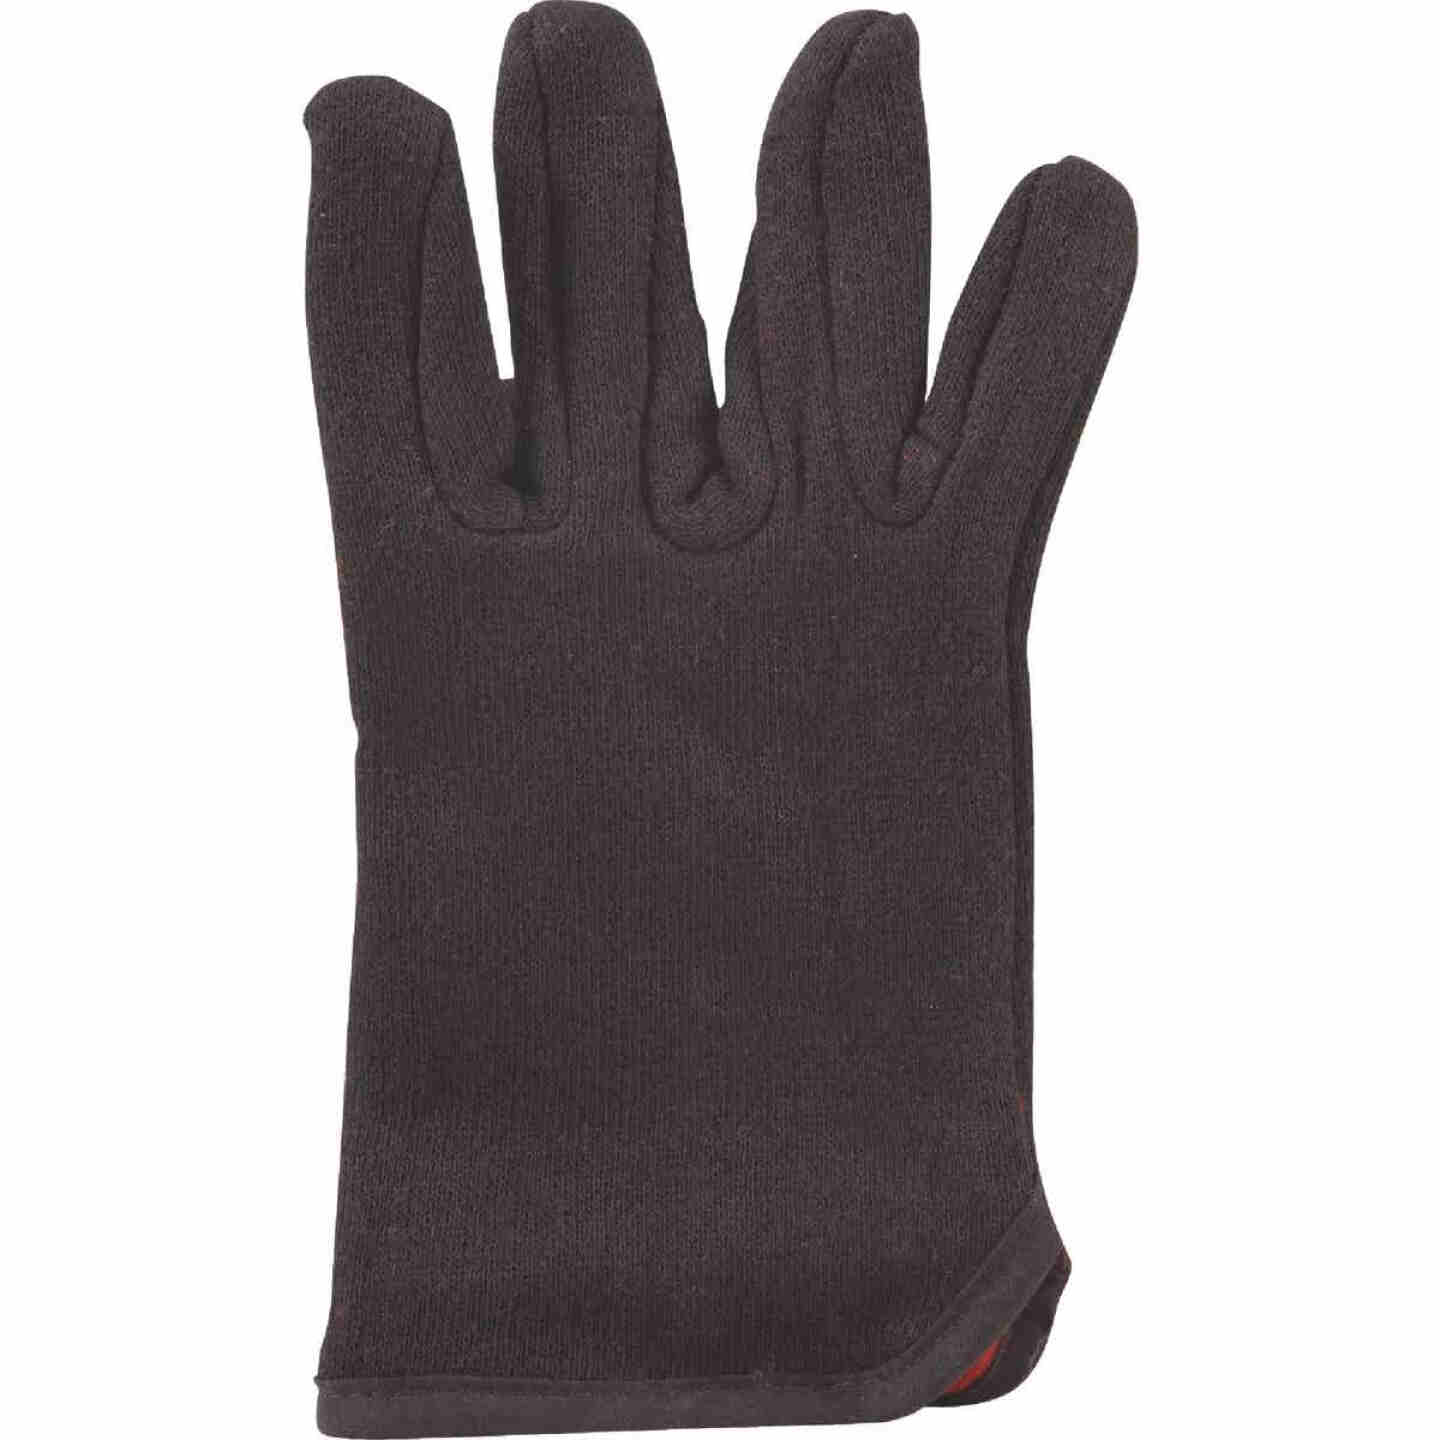 Do it Men's Large Lined Jersey Work Glove Image 7